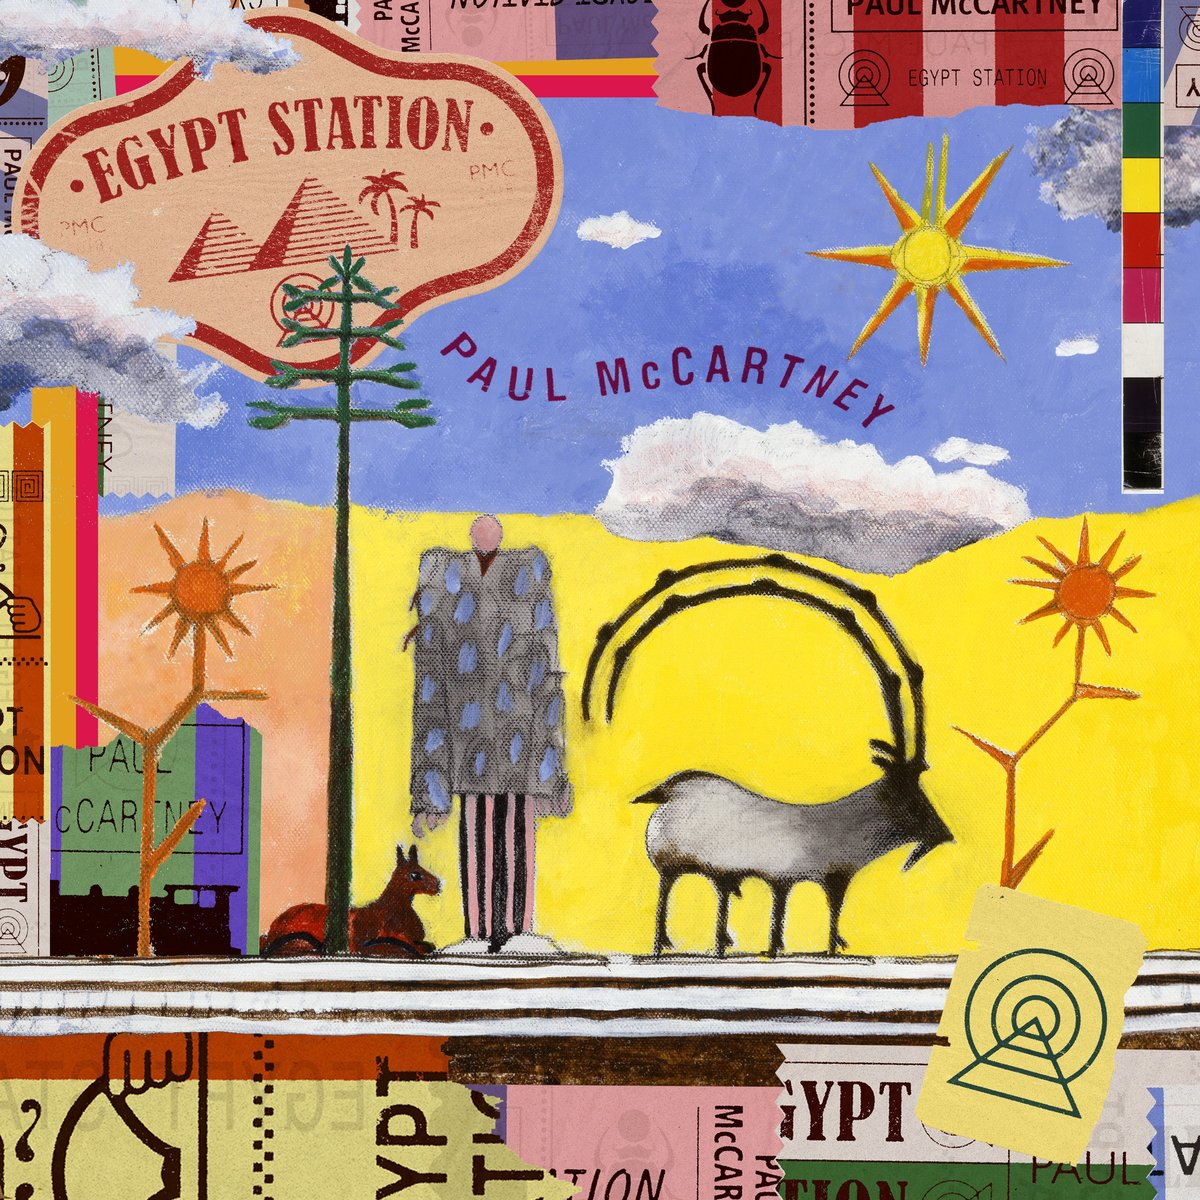 McCARTNEY PAUL – Egypt Station